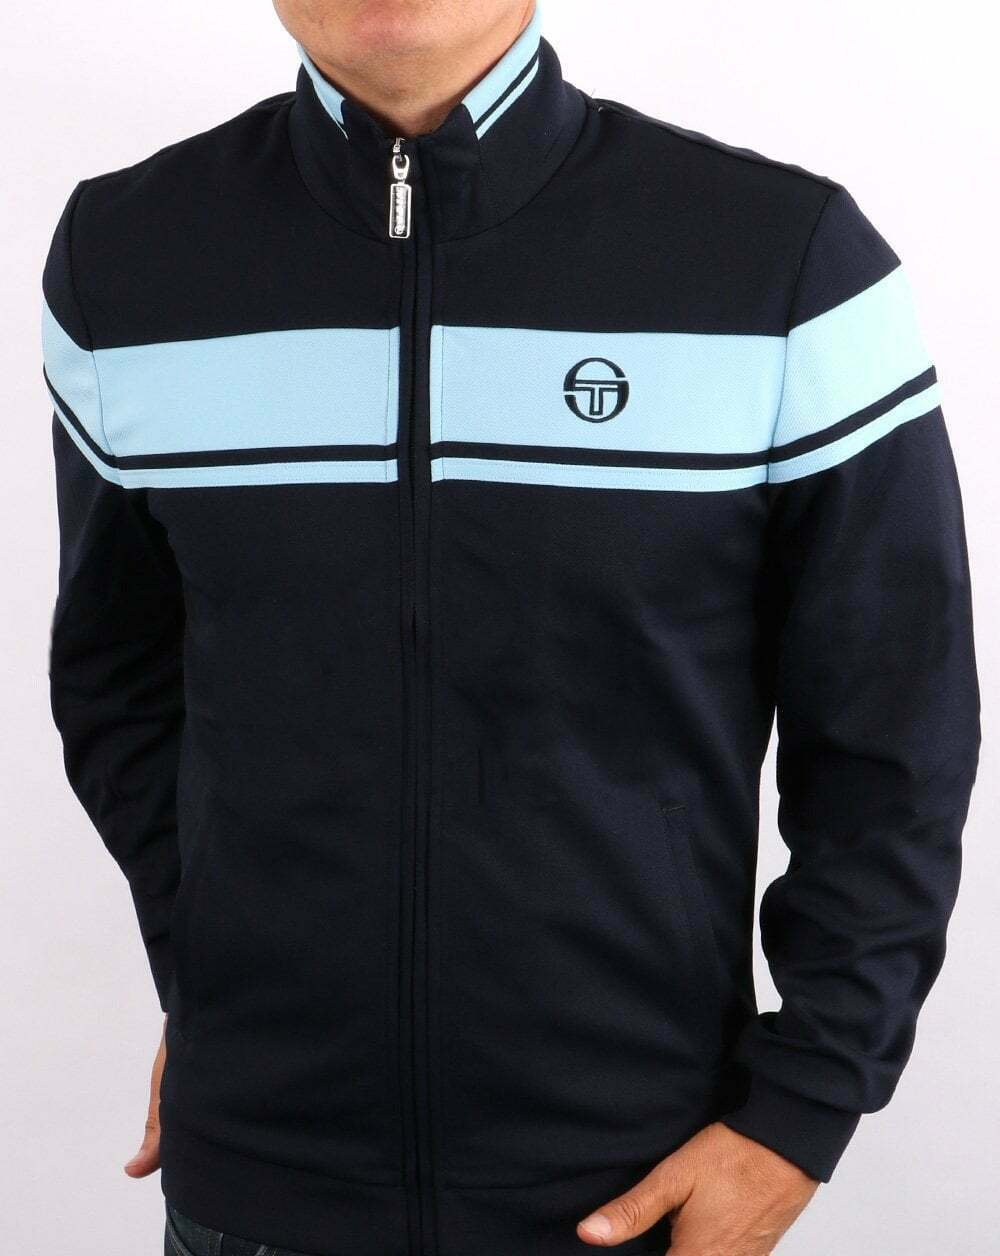 Sergio Tacchini Masters Track Top in Navy & Sky Blue - retro tracksuit jacket